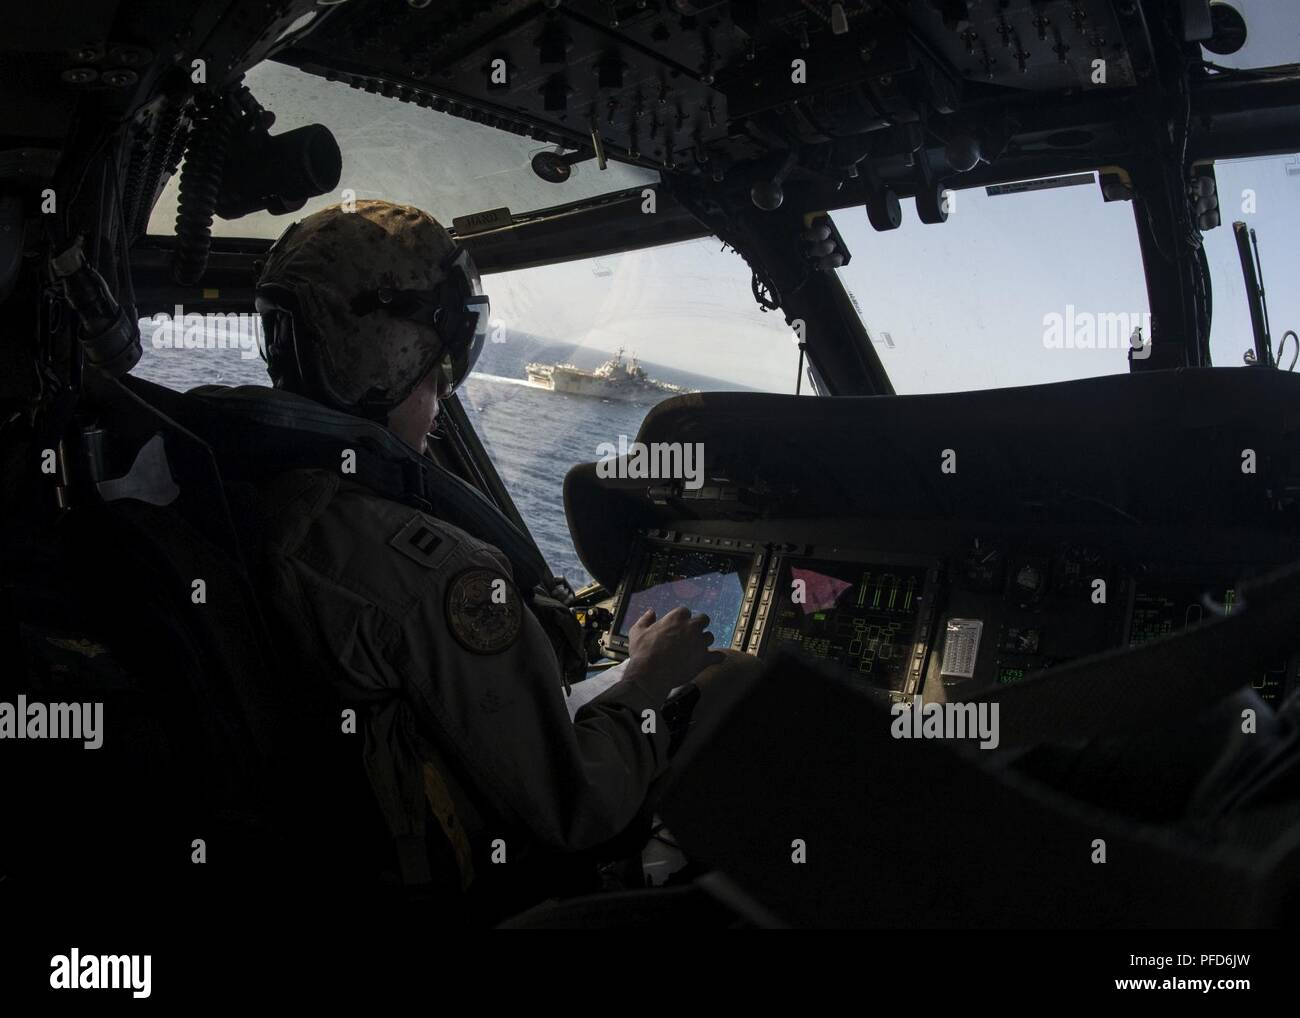 5TH FLEET AREA OF OPERATIONS (June 8, 2018) Lt. Bond Robinson, aircraft commander of an MH-60S Sea Hawk, attached to Helicopter Sea Combat Squadron (HSC) 28, conducts a replenishment-at-sea with the Wasp-class amphibious assault ship USS Iwo Jima (LHD 7, June 8, 2018. Iwo Jima, homeported in Mayport, Fla., is on deployment to the U.S. 5th Fleet area of operations in support of maritime security operations to reassure allies and partners, and preserve the freedom of navigation and the free flow of commerce in the region. Stock Photo